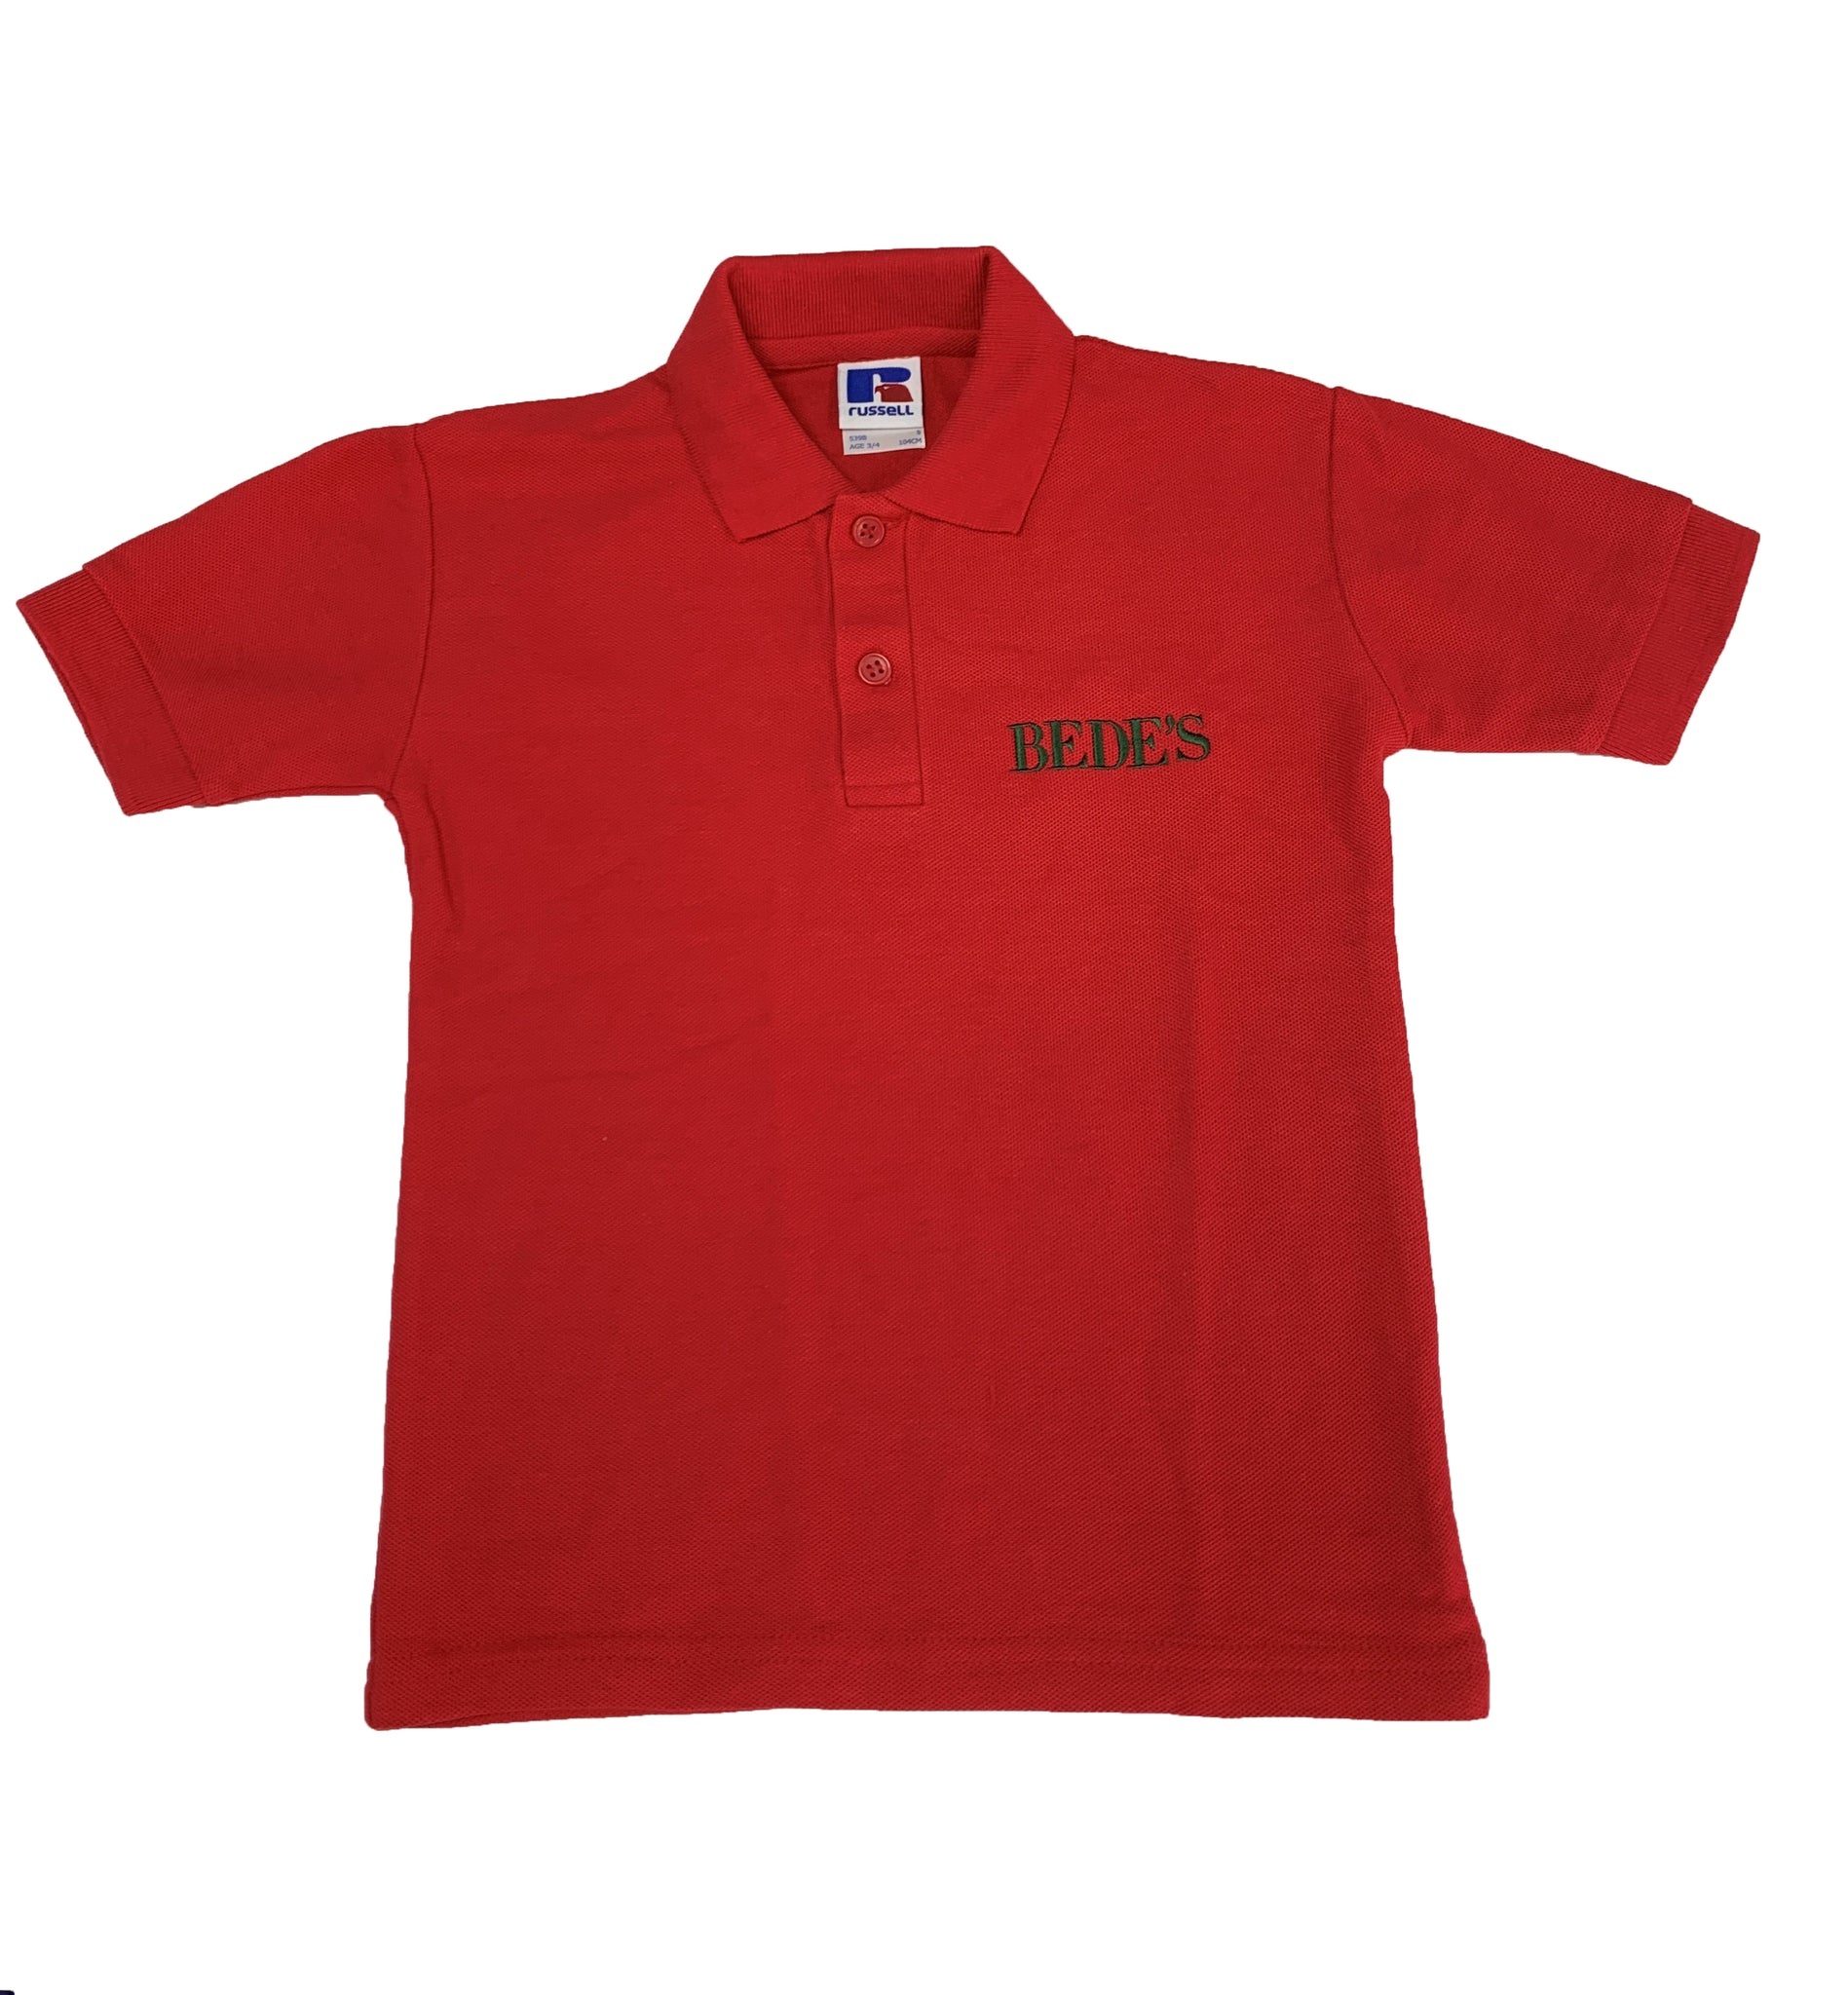 Nursery Red Polo Shirt